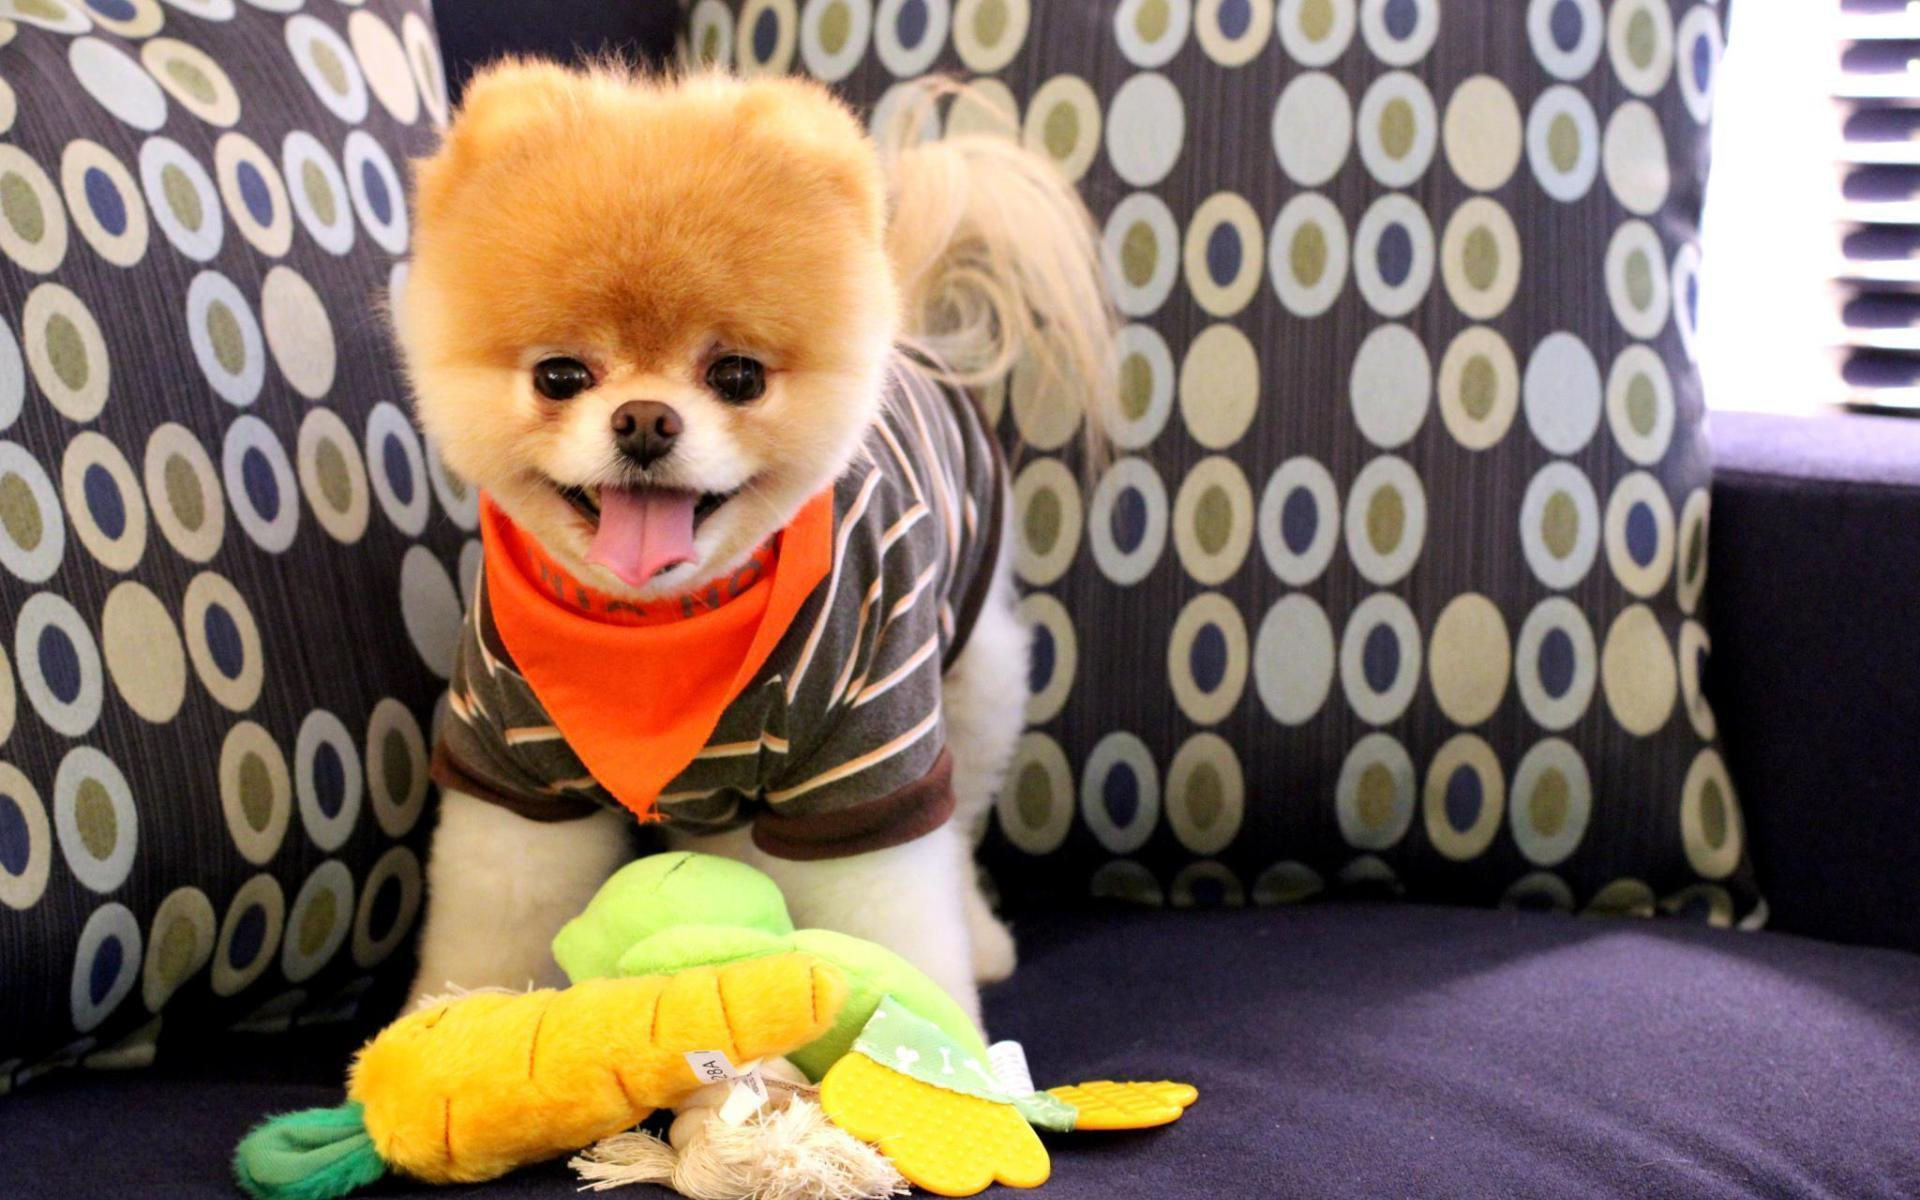 boo the cutest dog wallpapers - DriverLayer Search Engine